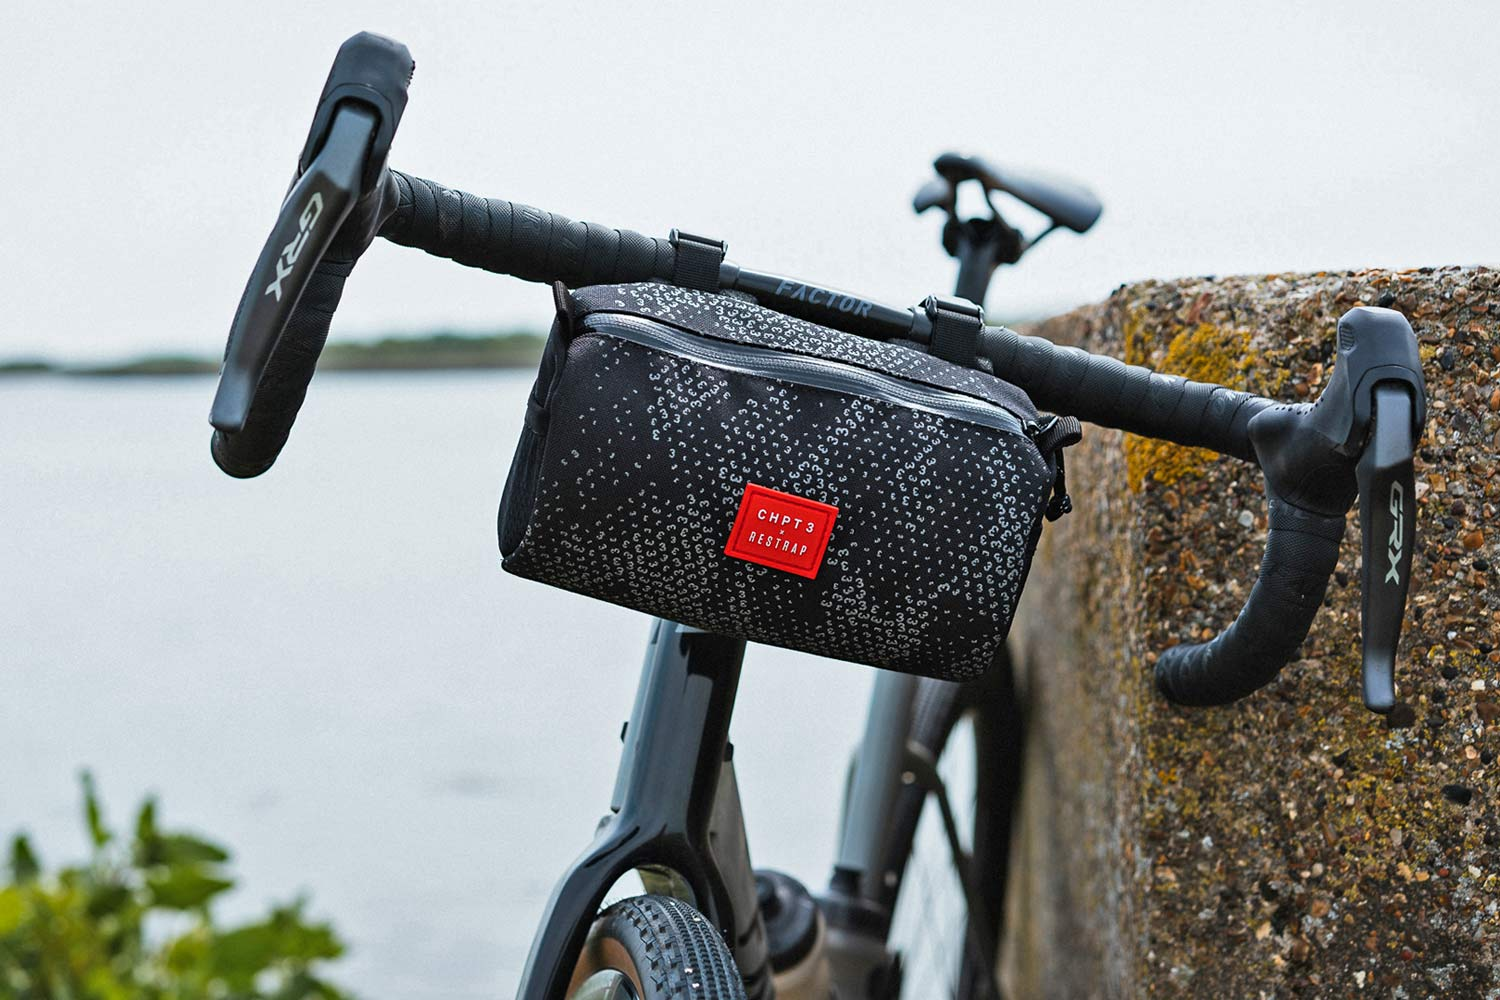 Restrap x CHPT3 Limited Run 03 special edition small bike bags